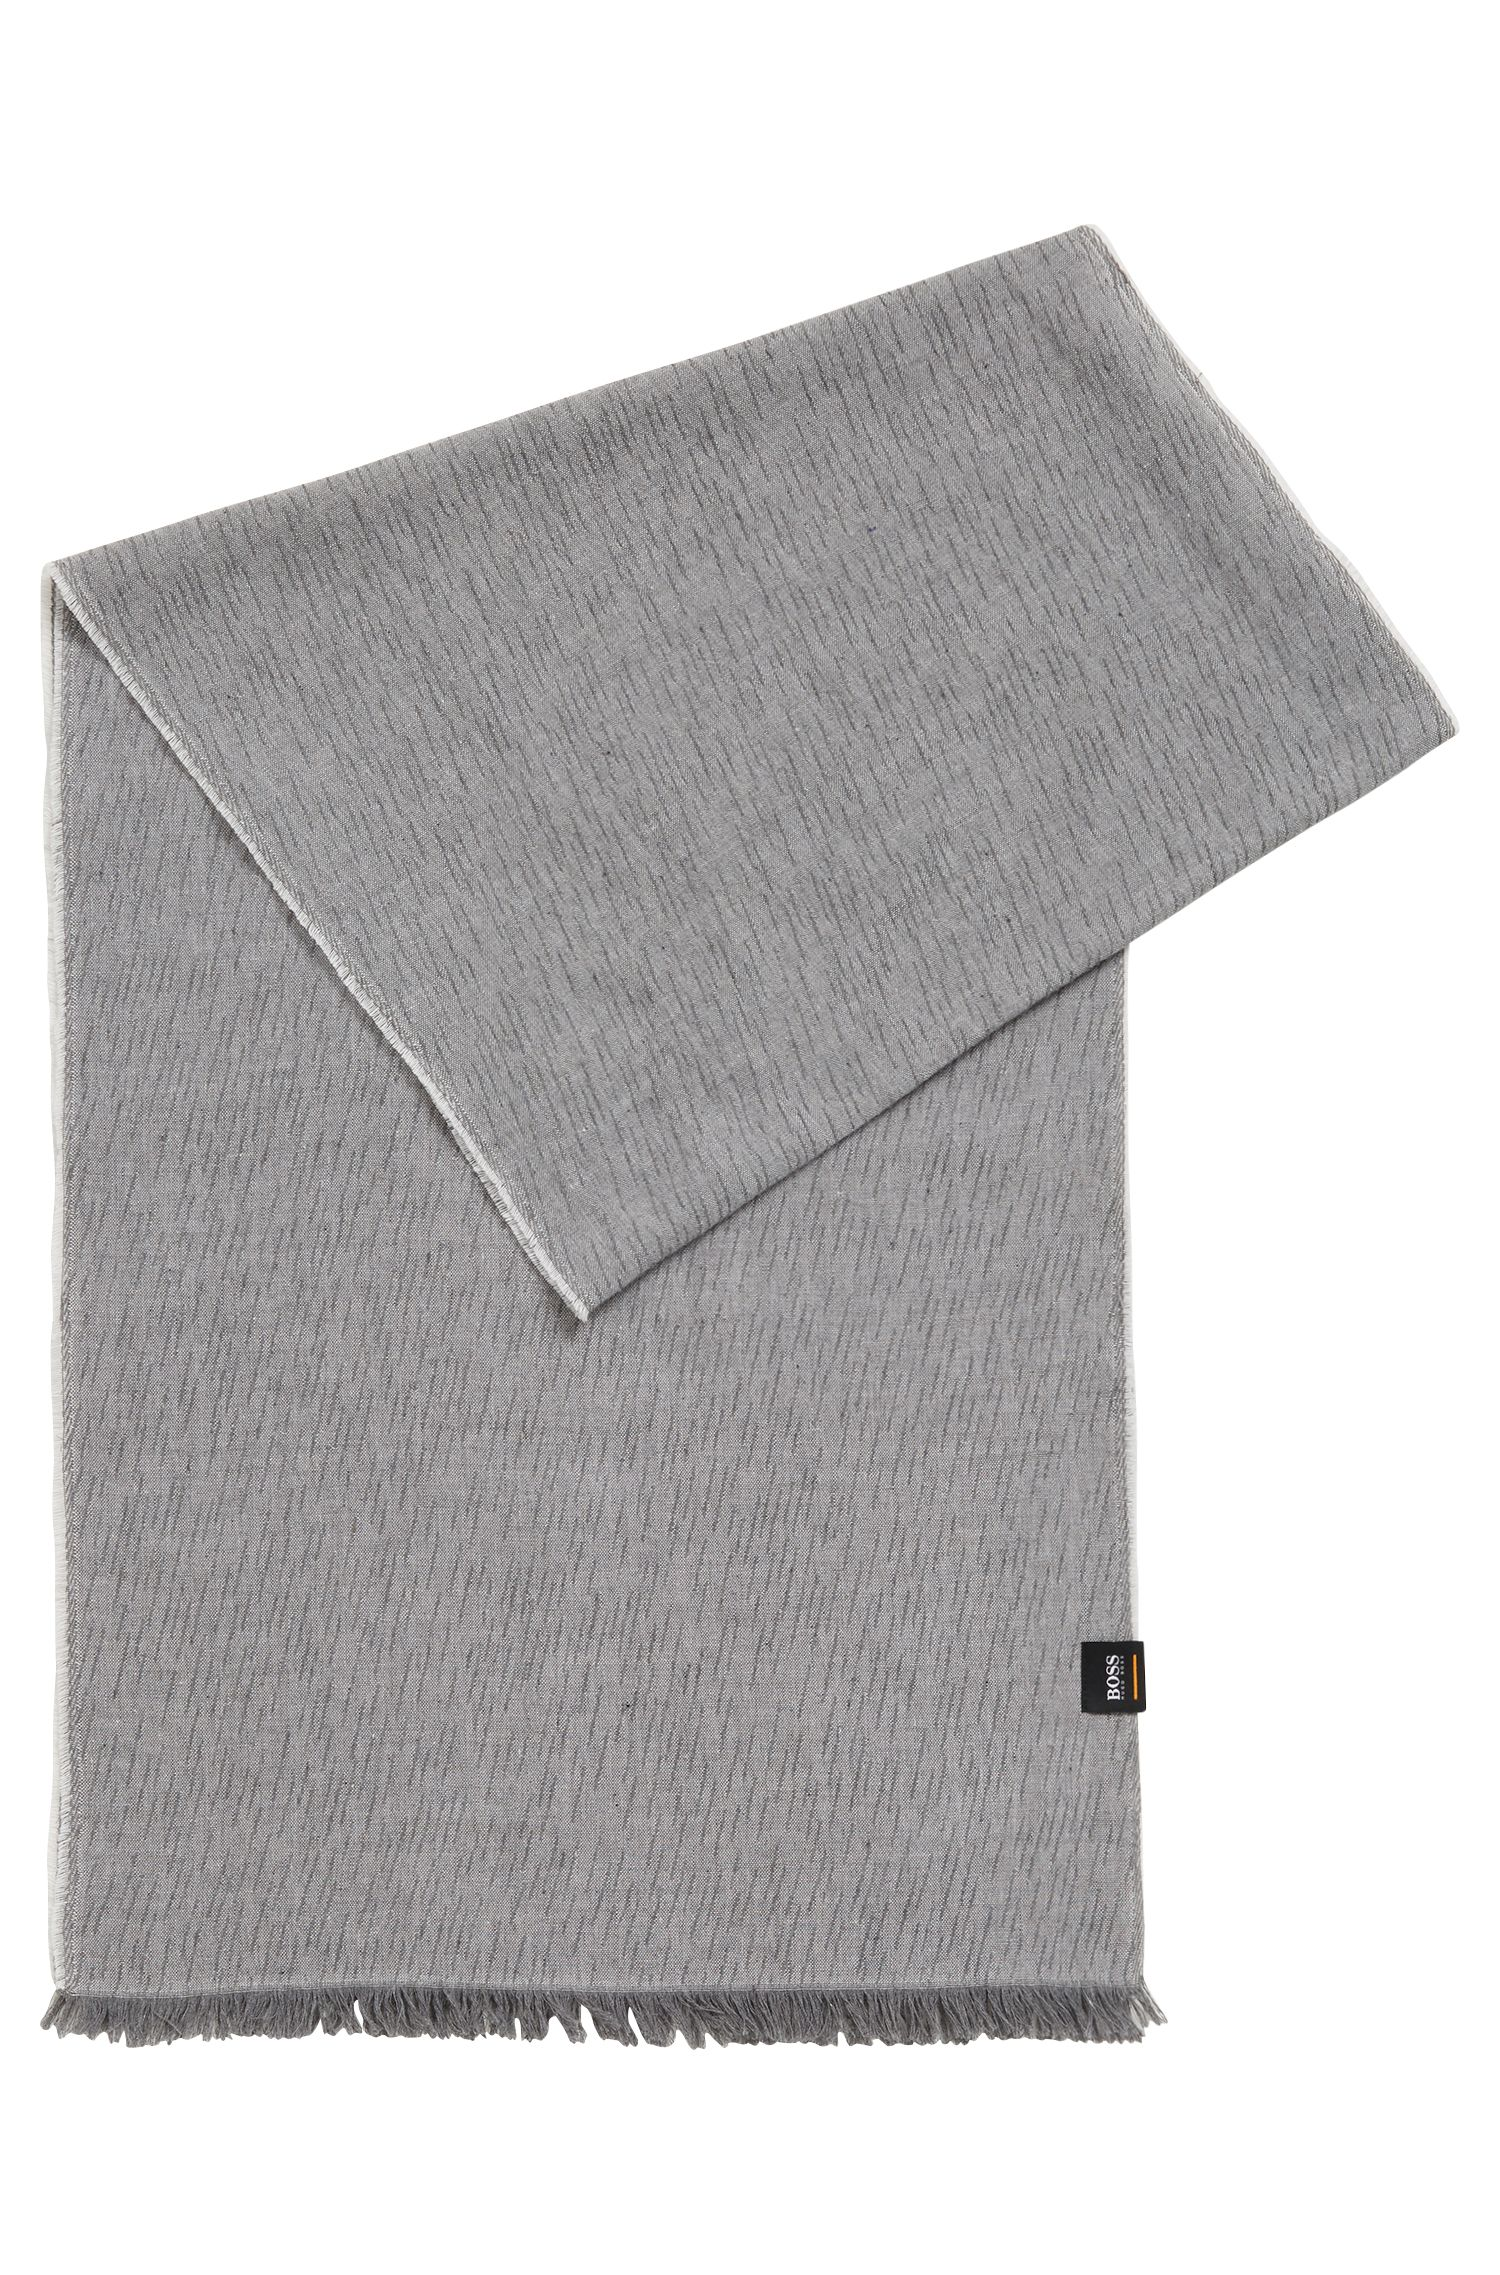 Cotton jacquard scarf with all-over raindrop pattern, Light Grey